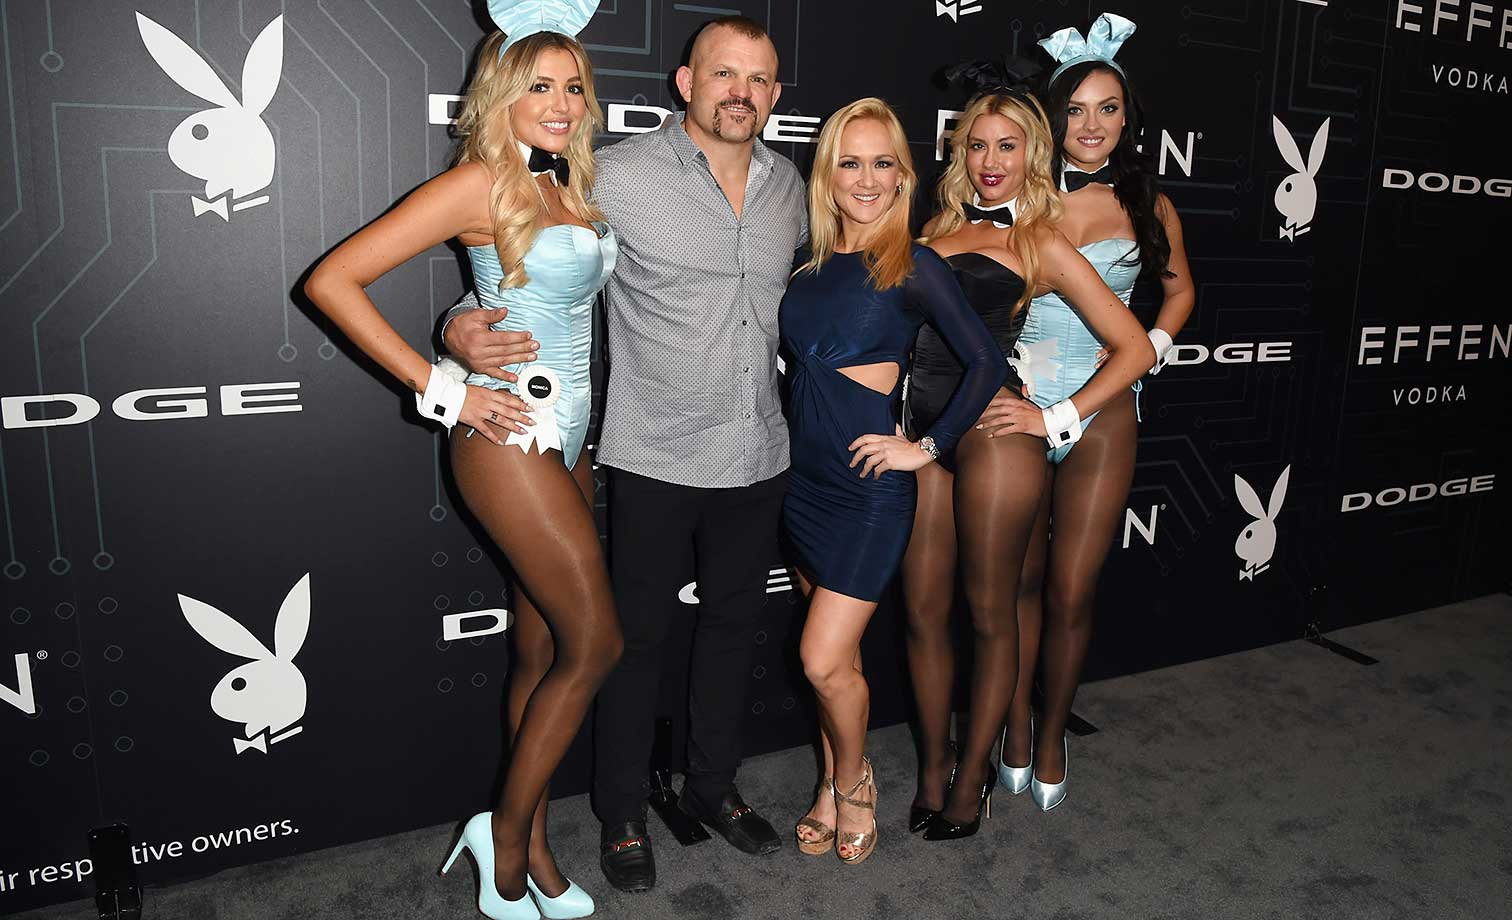 Monica Sims, Chuck Liddell, Heidi Northcott, Heather Rae Young and Alexandra Tyler :: The Playboy Party